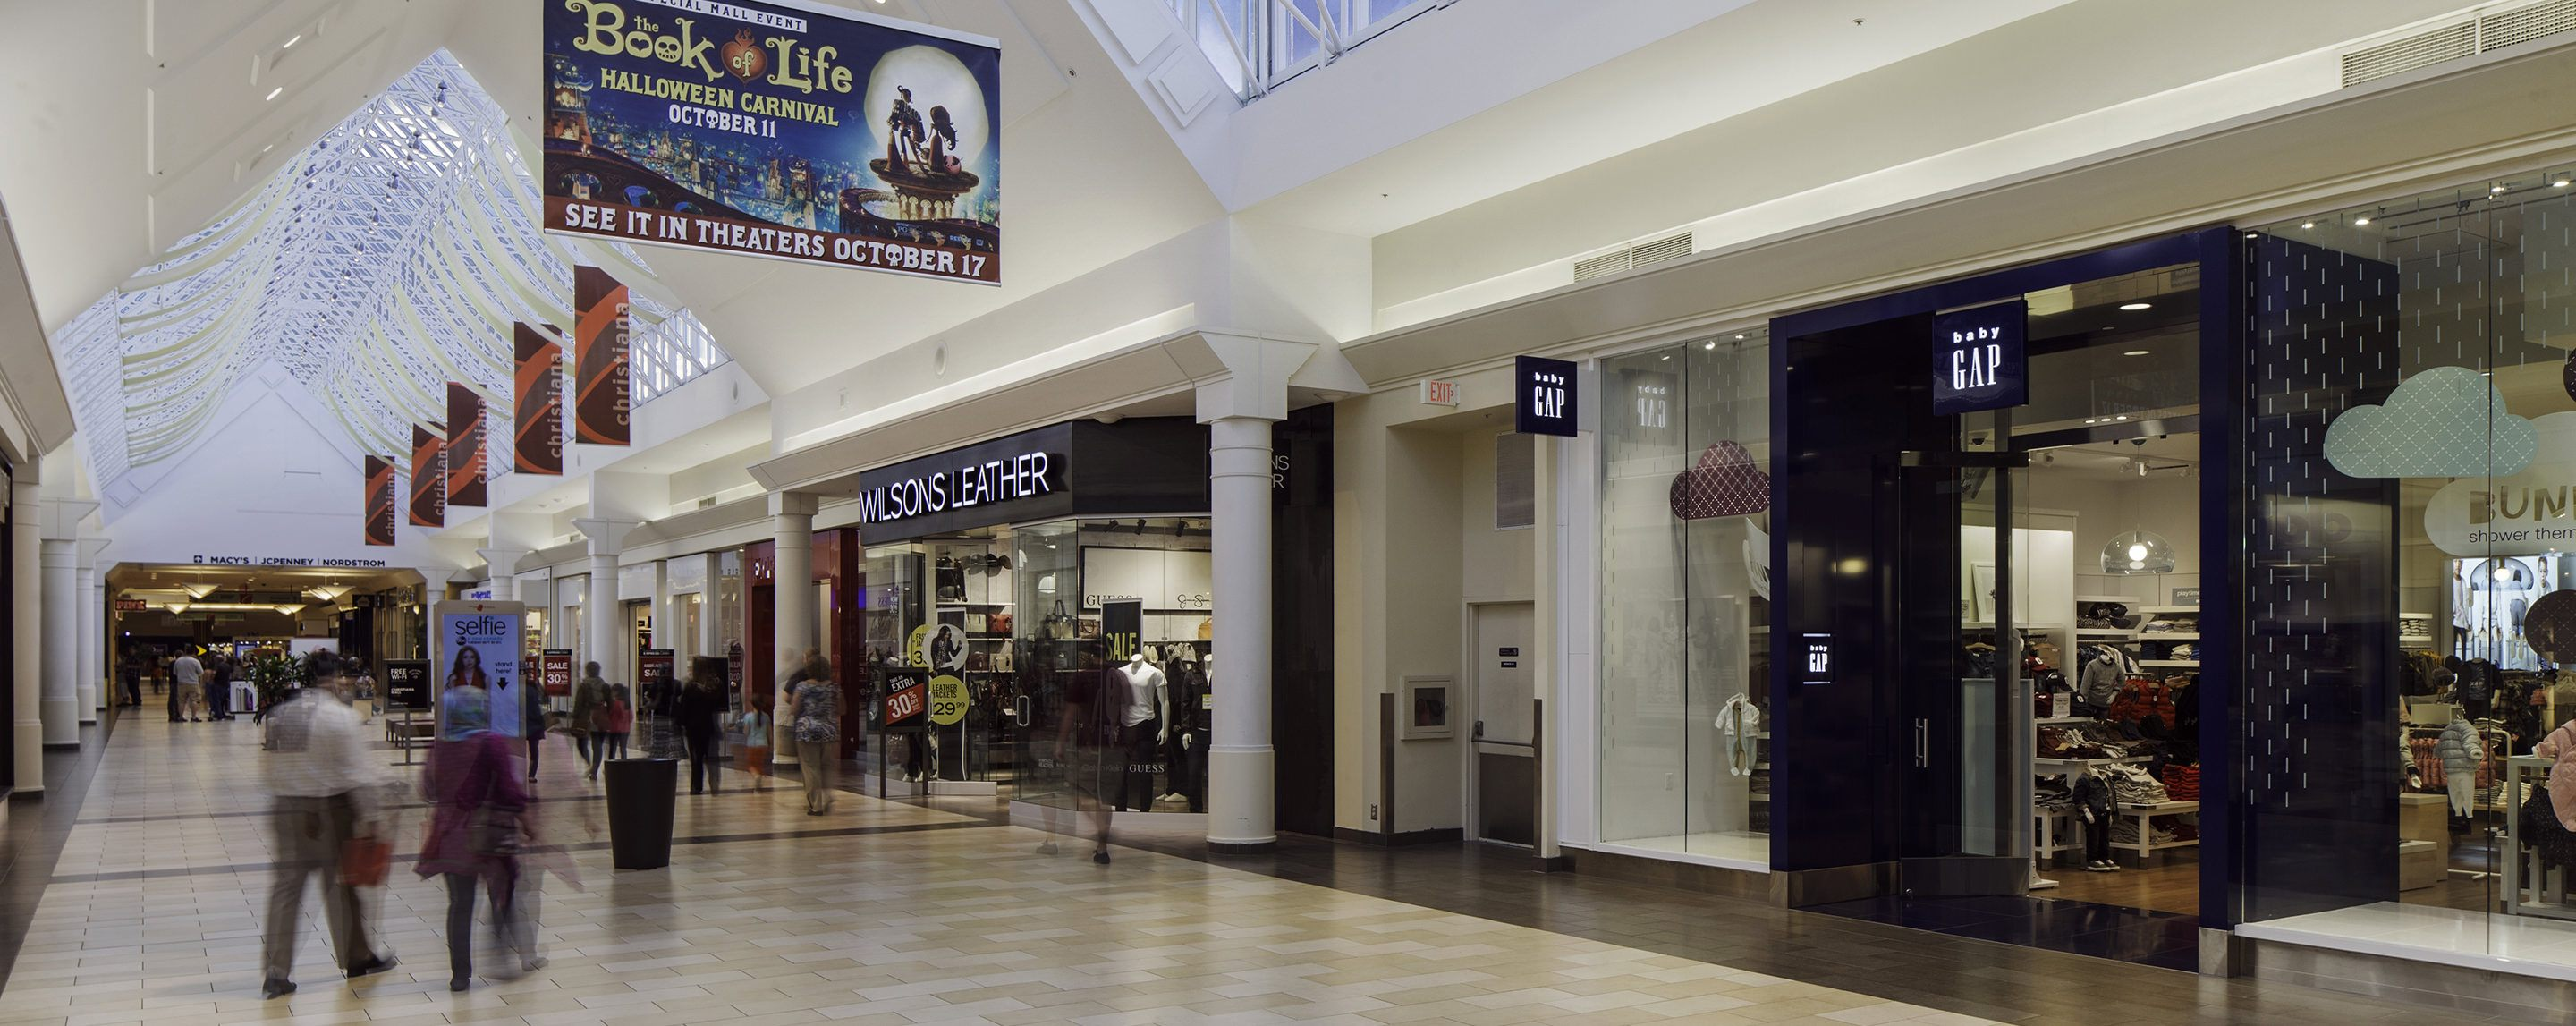 People walking by a GAP store inside of a mall.